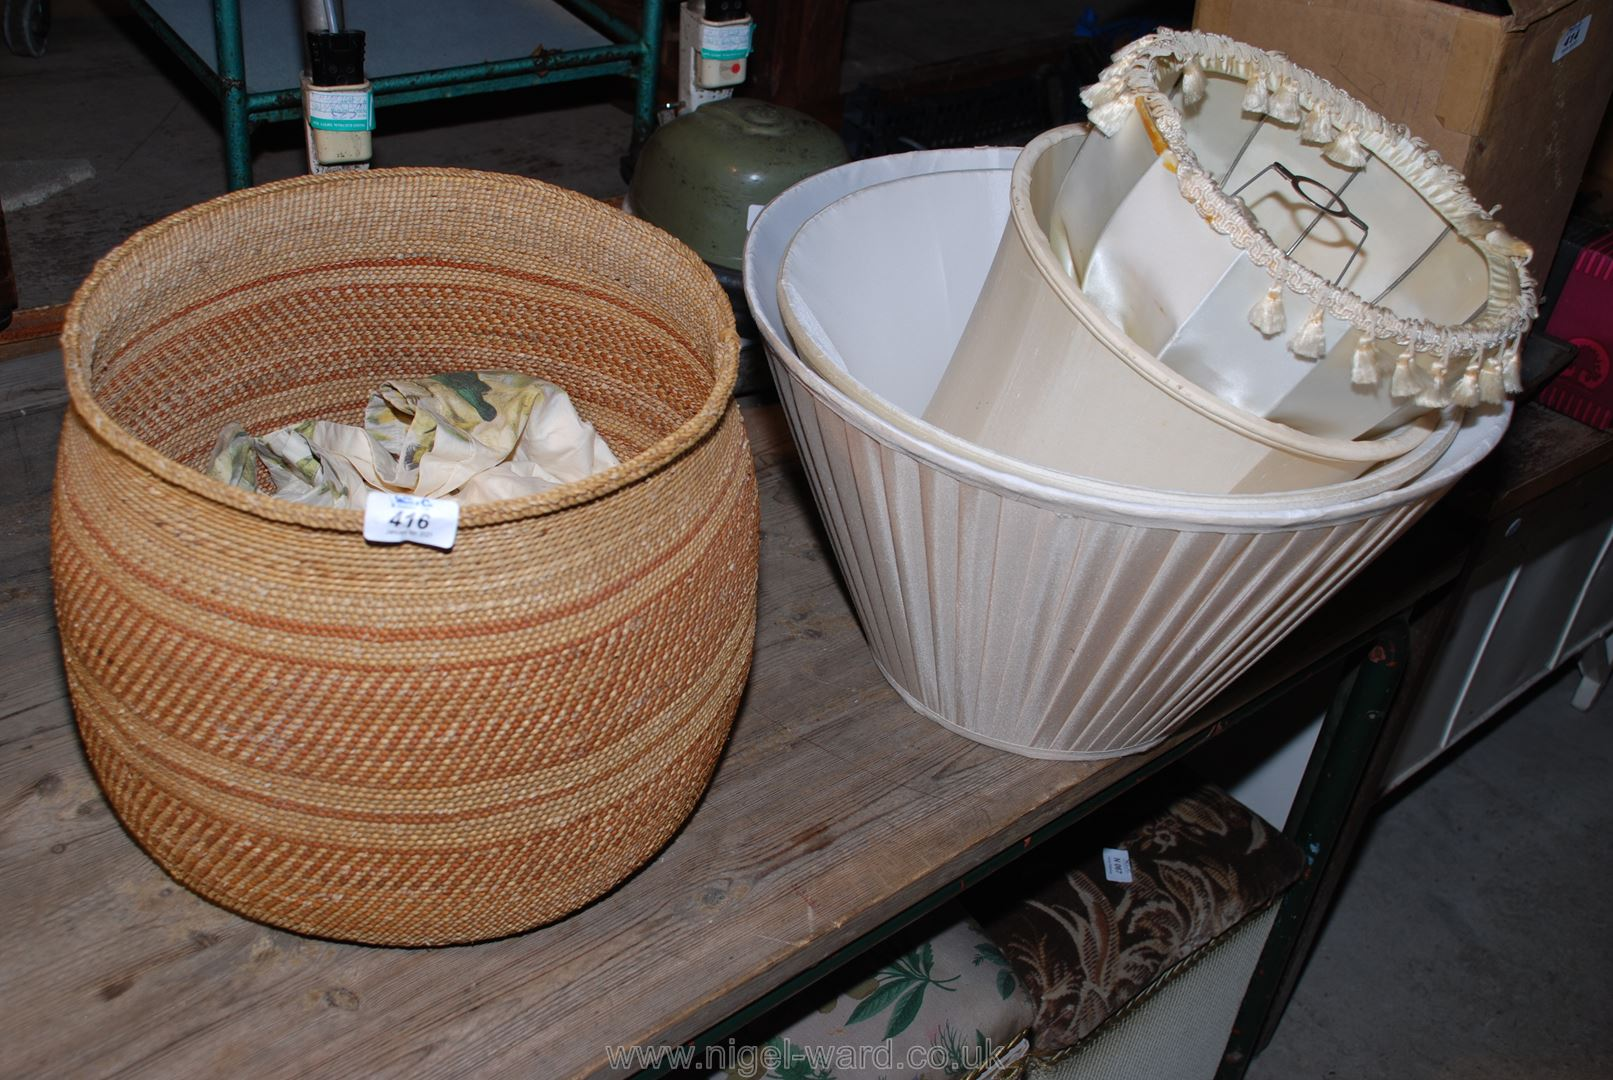 A snake charmer's Basket and quantity of lampshades.